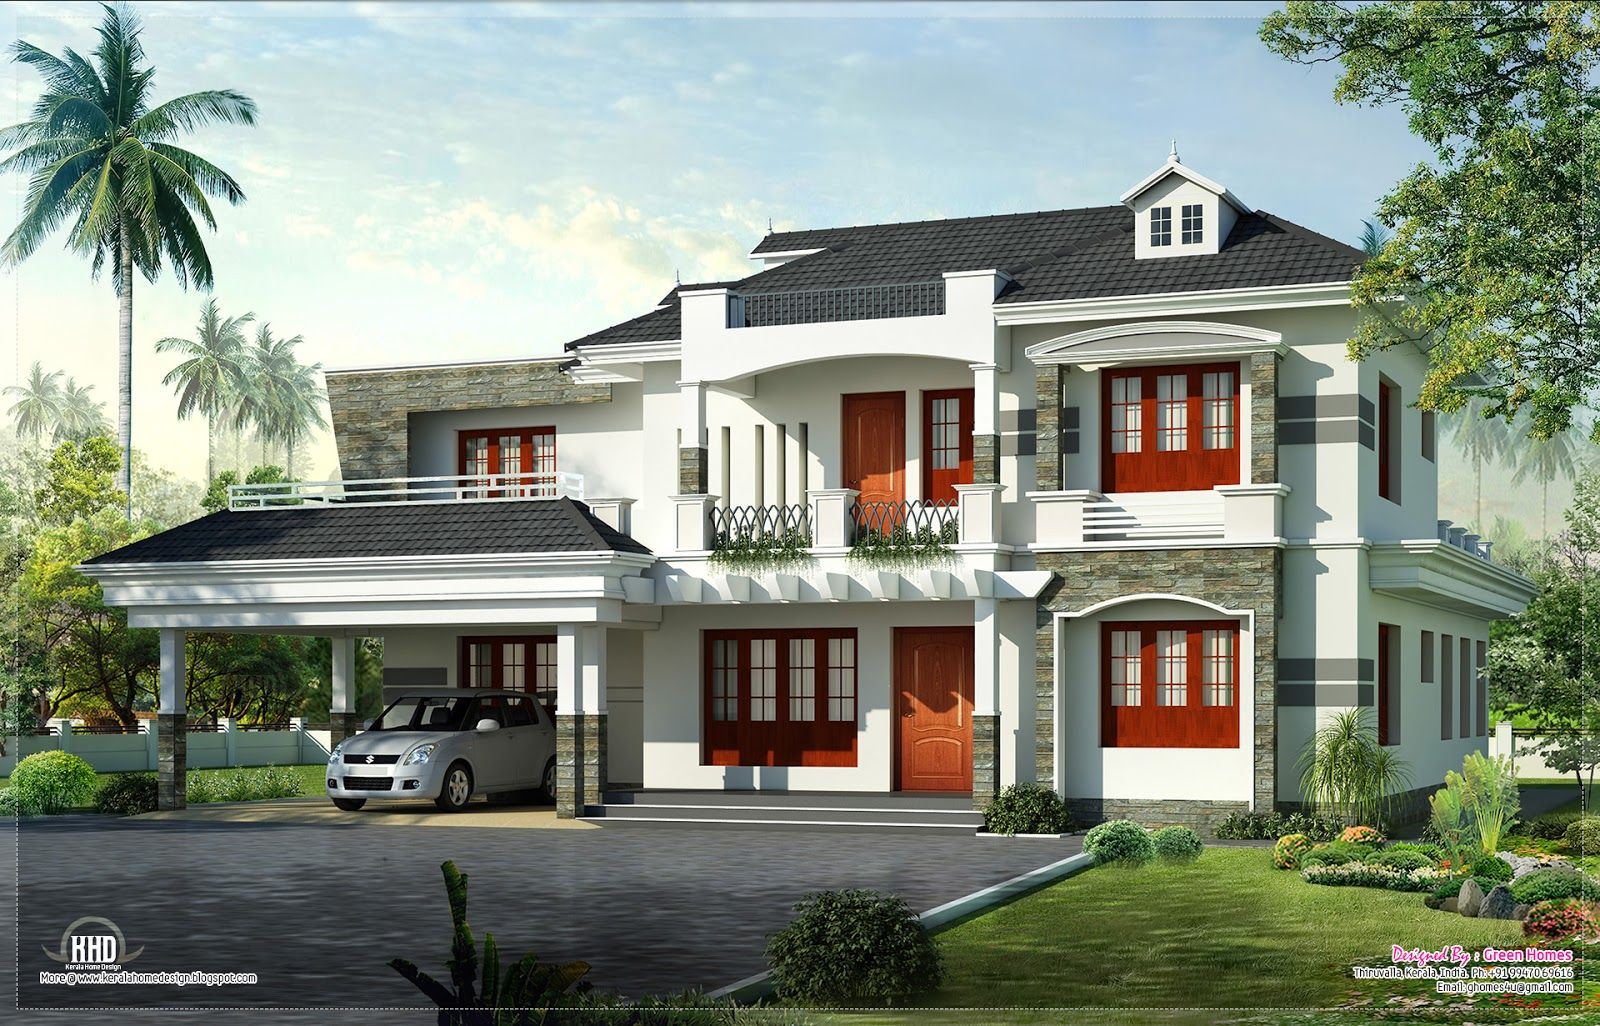 Amazing Designs For New Homes New Kerala Home On Home Design